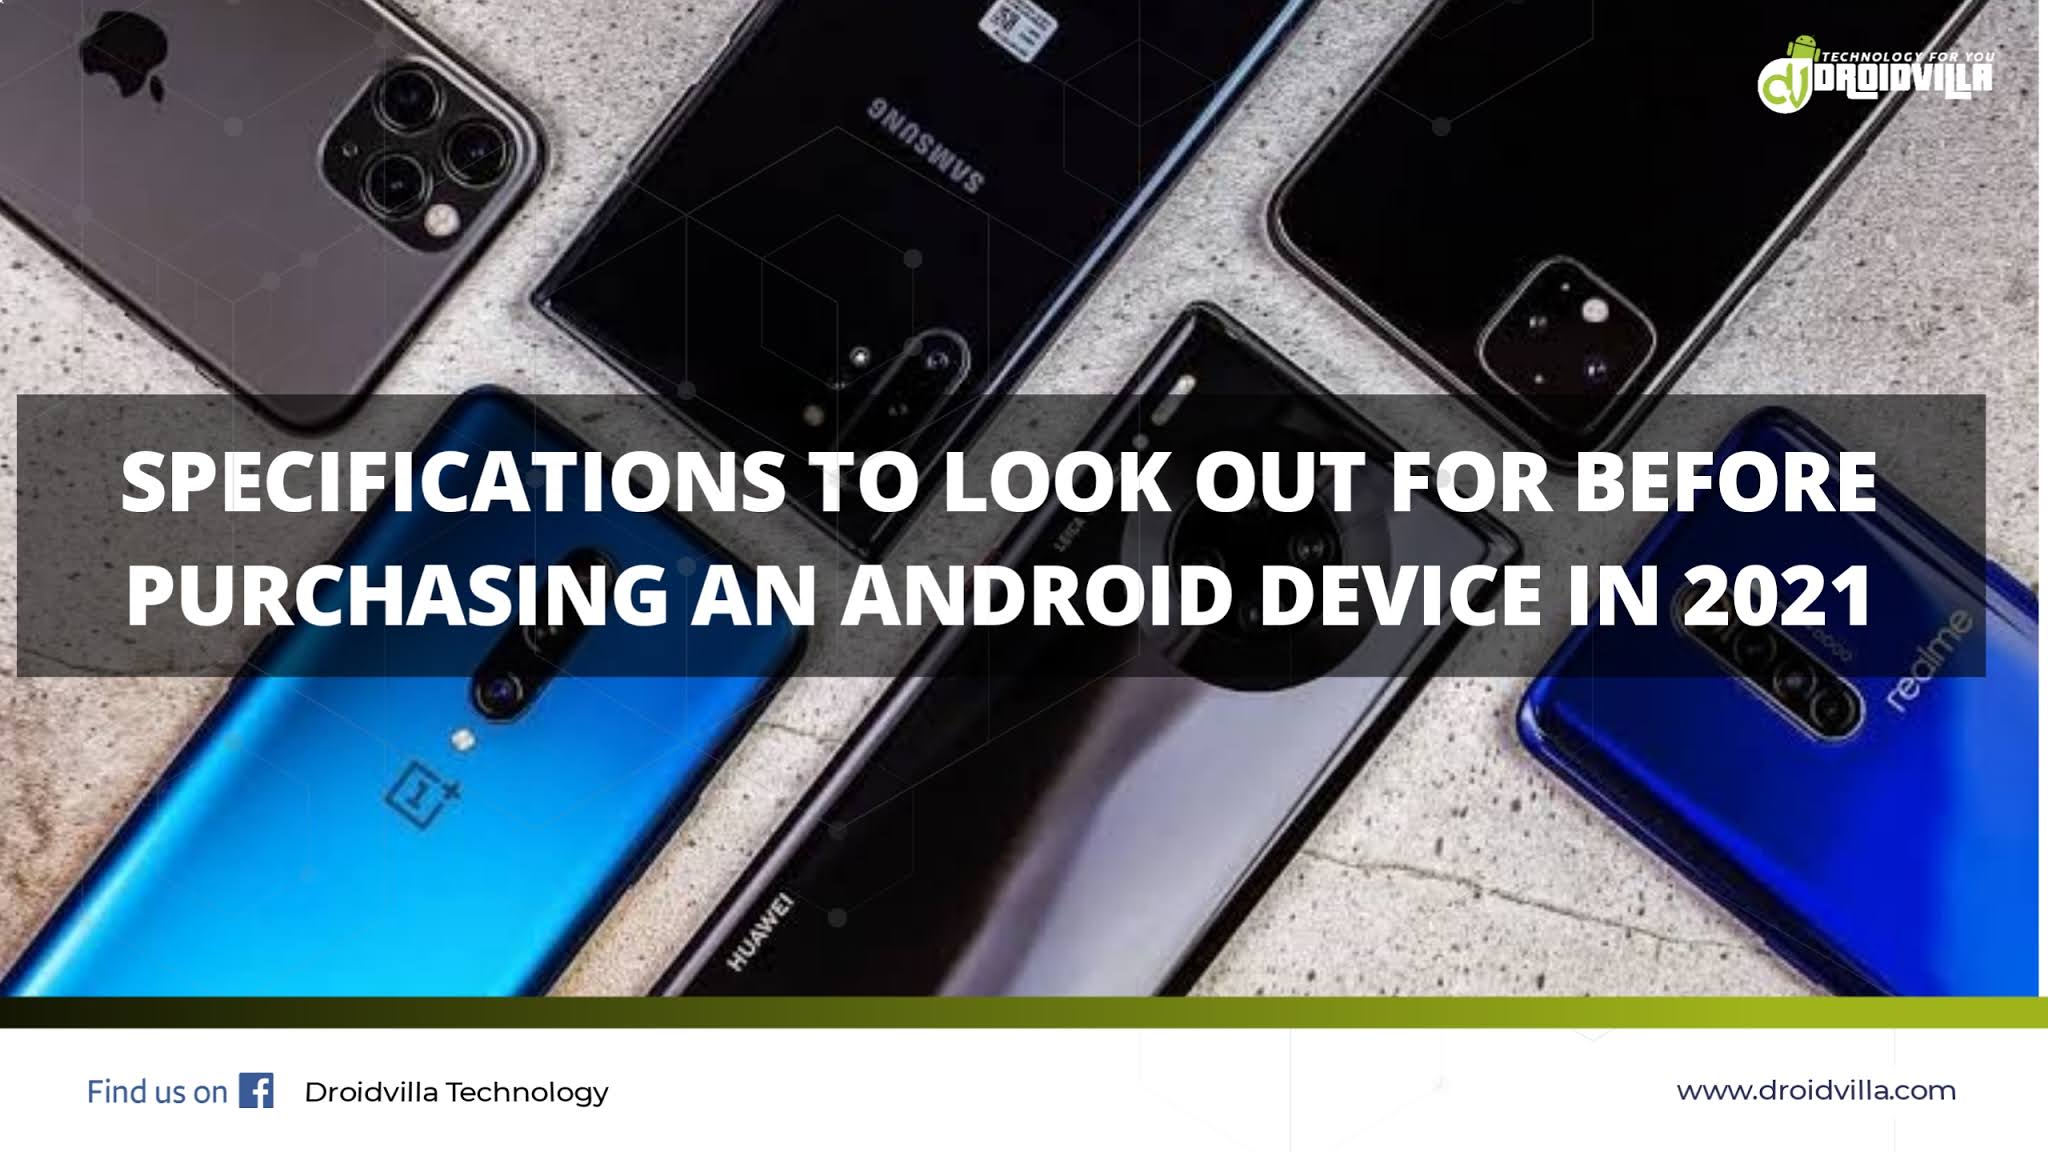 specifications-to-look-out-for-before-purchasing-an-android-device-in-2021-droidvilla-tech-1-android-tech-blog